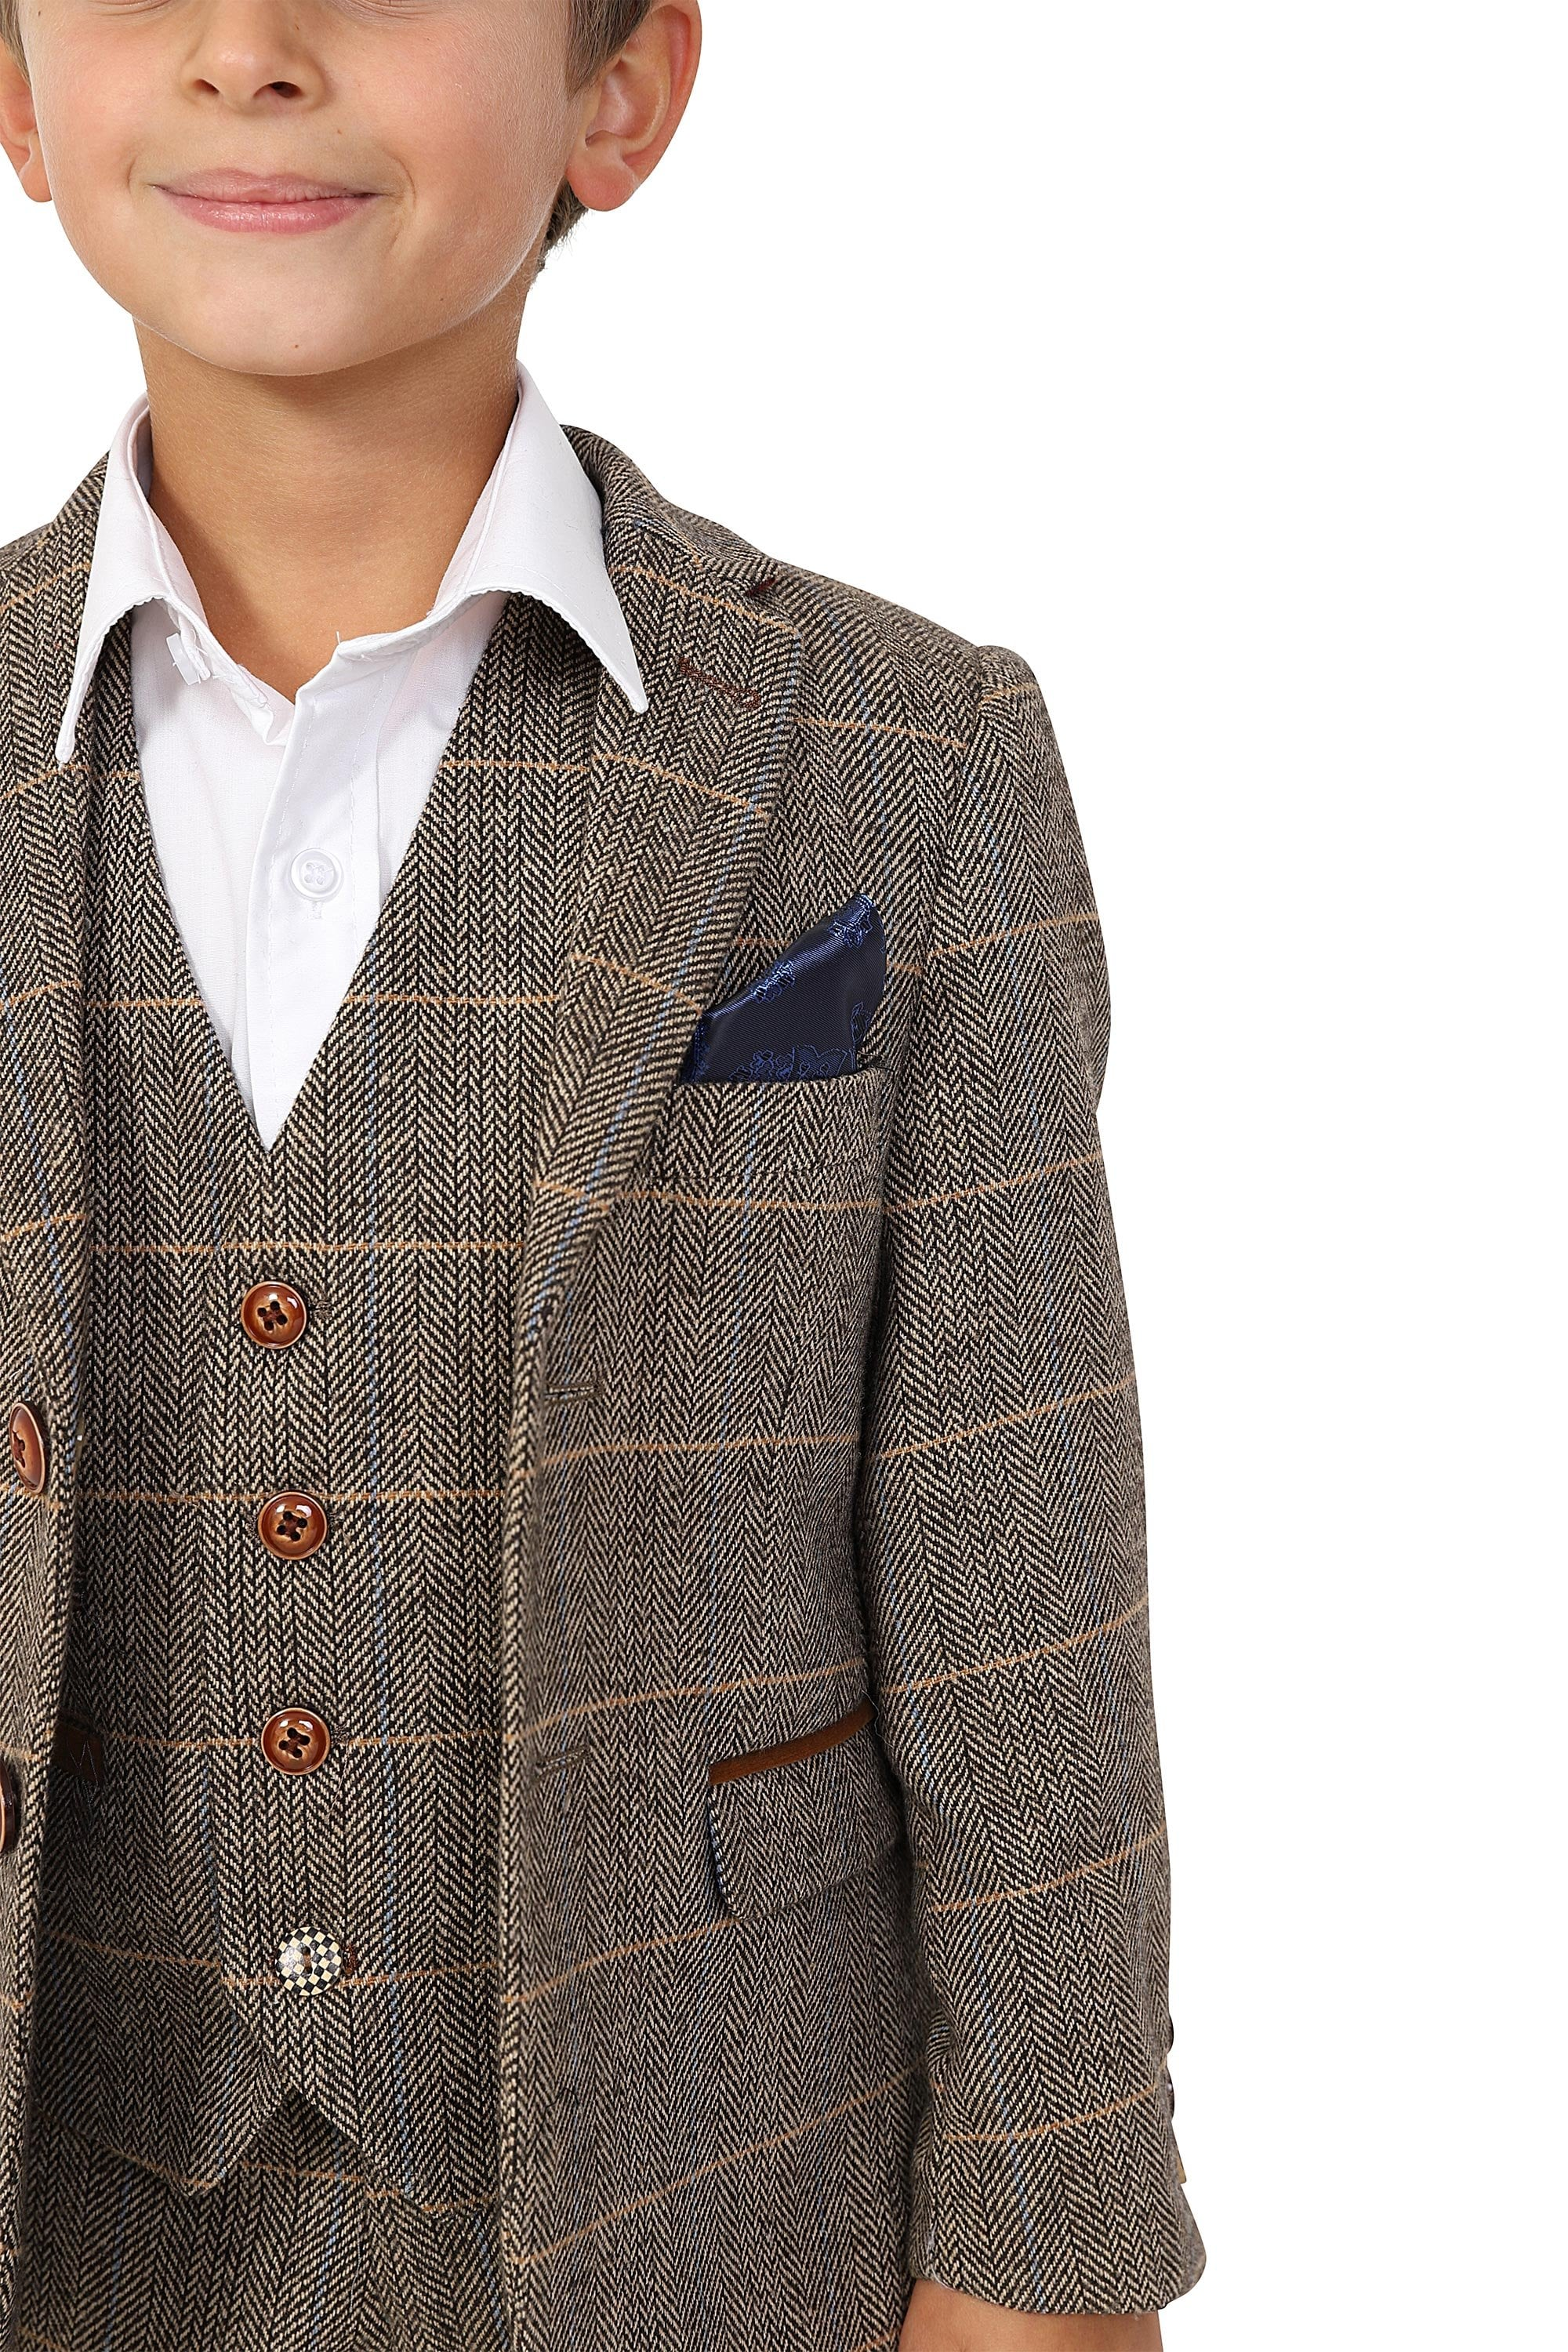 Boys Ted Tan Check Tweed Three Piece Suit